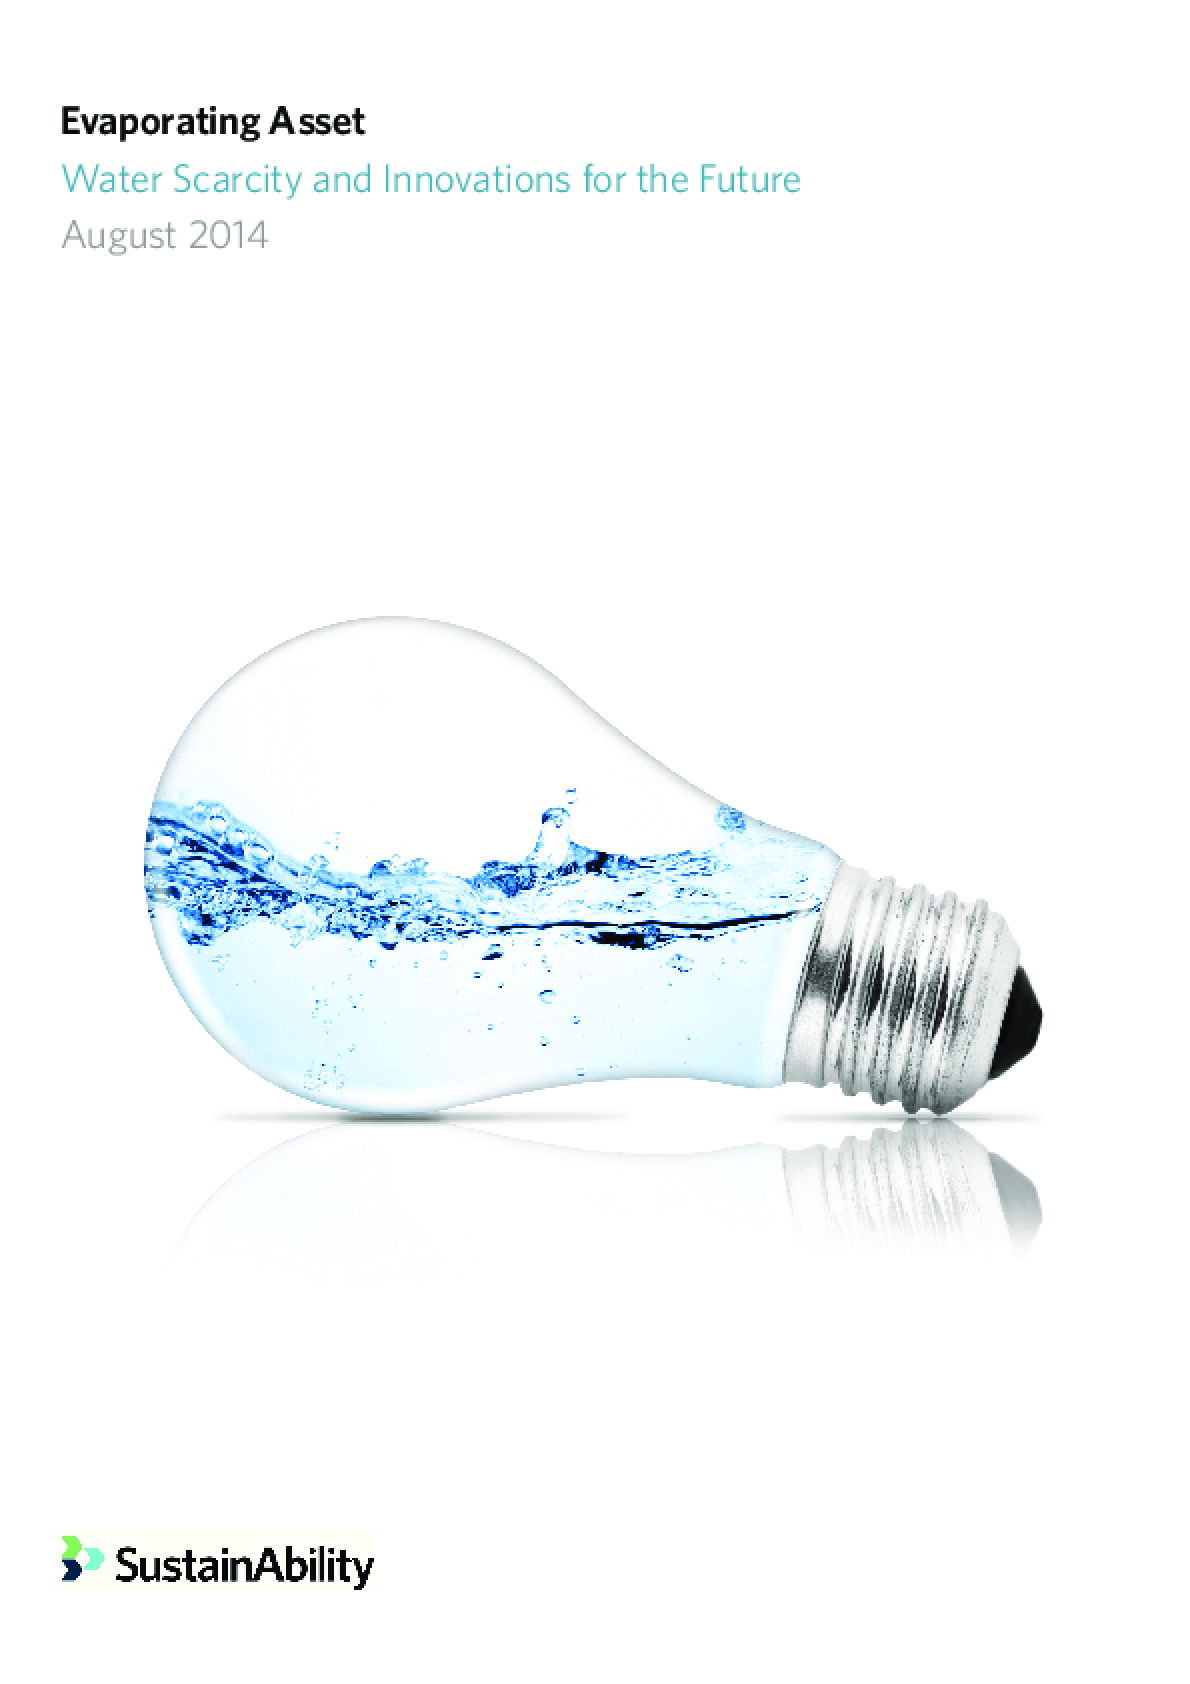 Evaporating Asset: Water Scarcity and Innovations for the Future